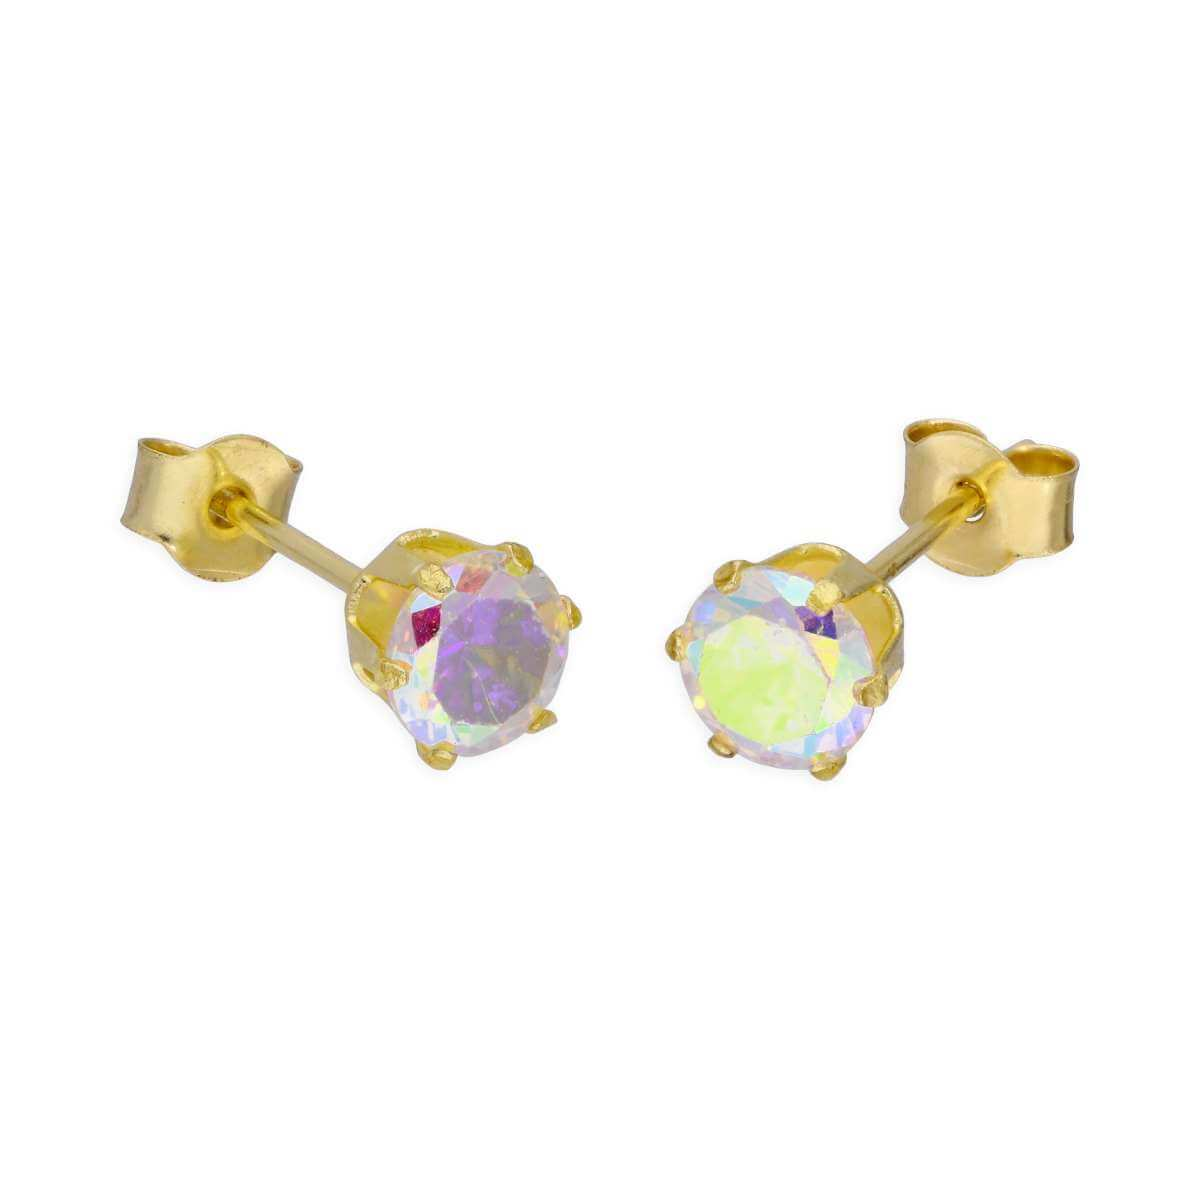 9ct Yellow Gold & 4mm Aurora Borealis CZ Crystal Stud Earrings